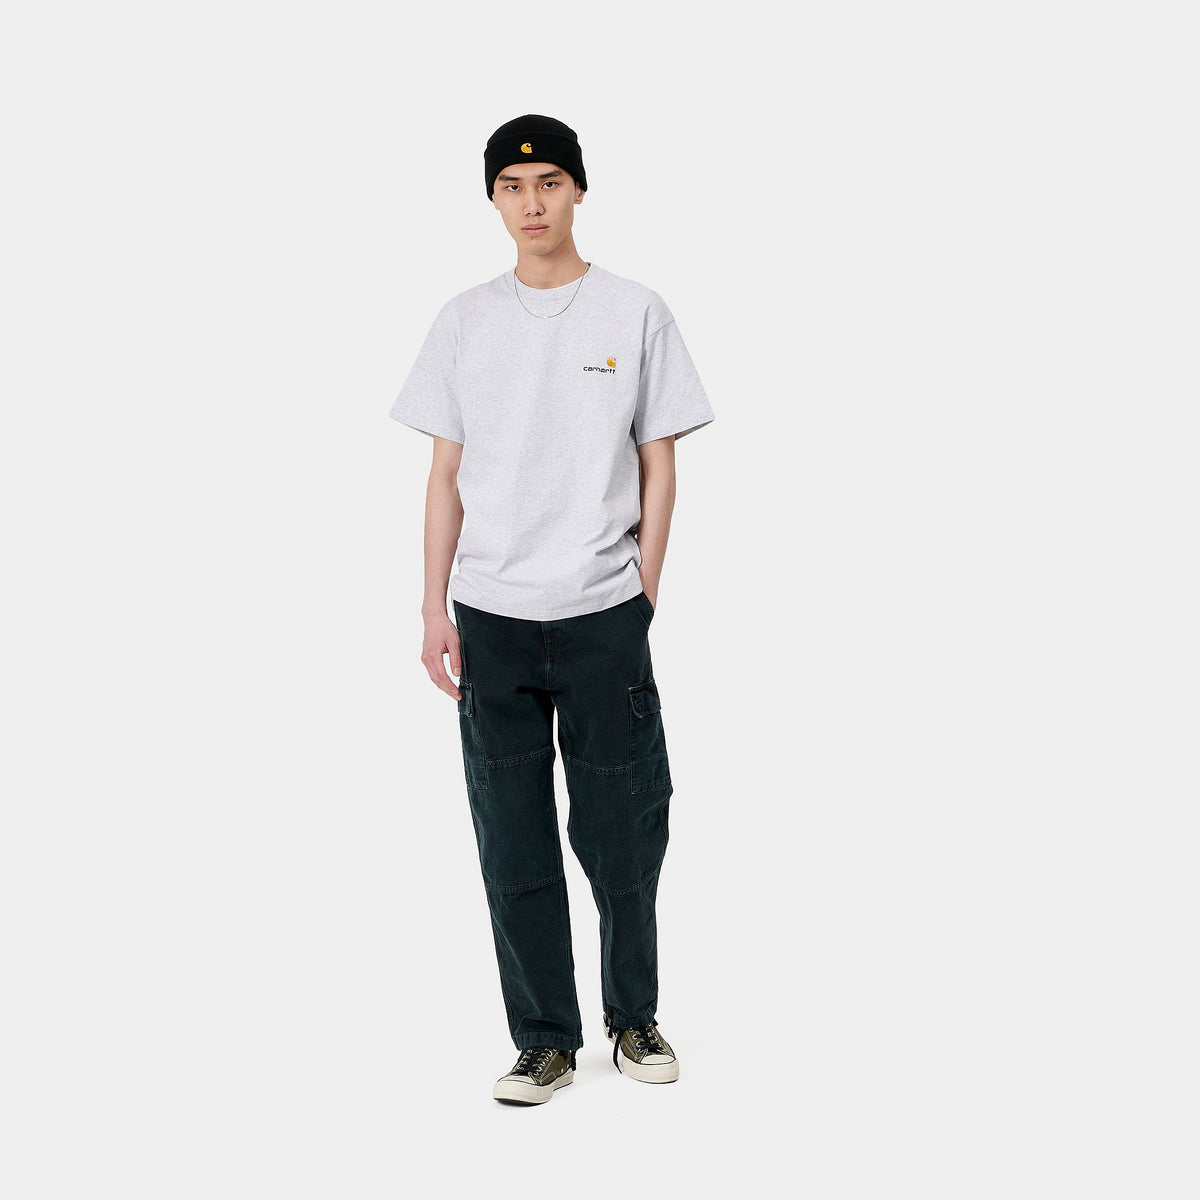 S/S American Script T-Shirt - Ash Heather